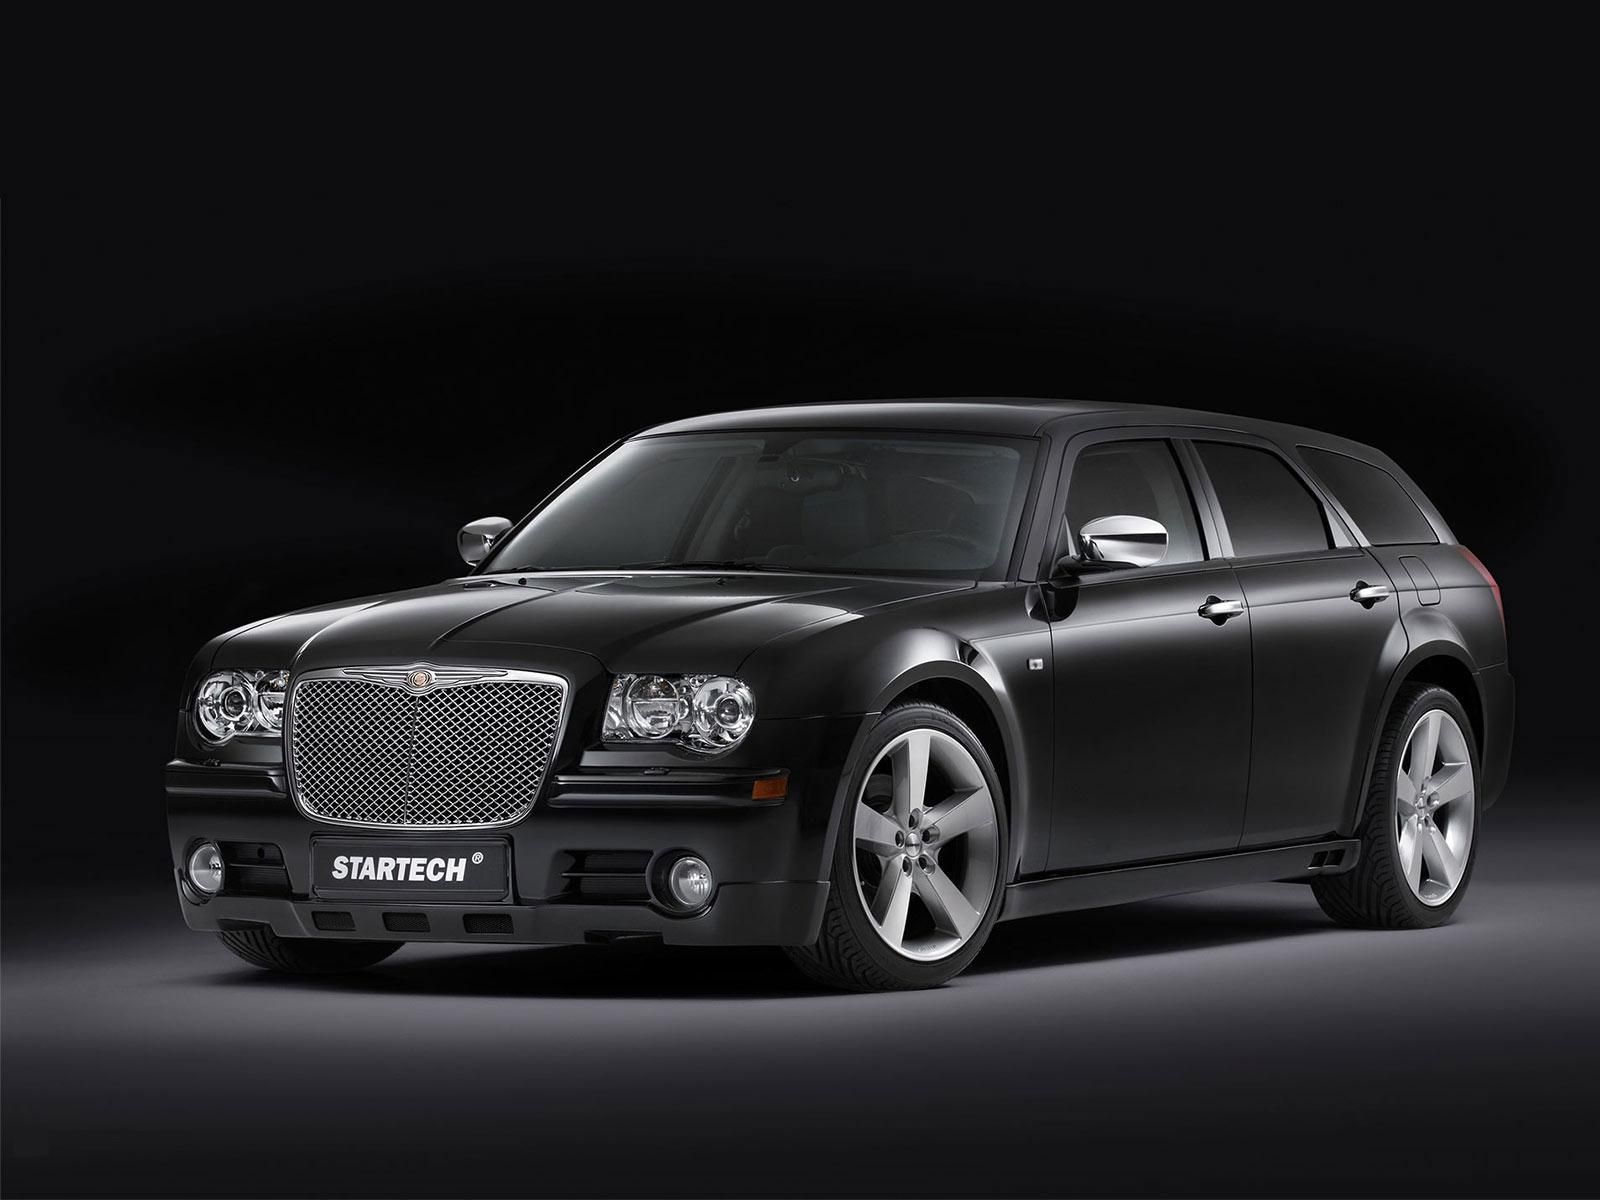 Chrysler 300 the chrysler 300 is a full size sedan first shown at the 2003 new york auto show as a concept car sales in the u began in the spring of